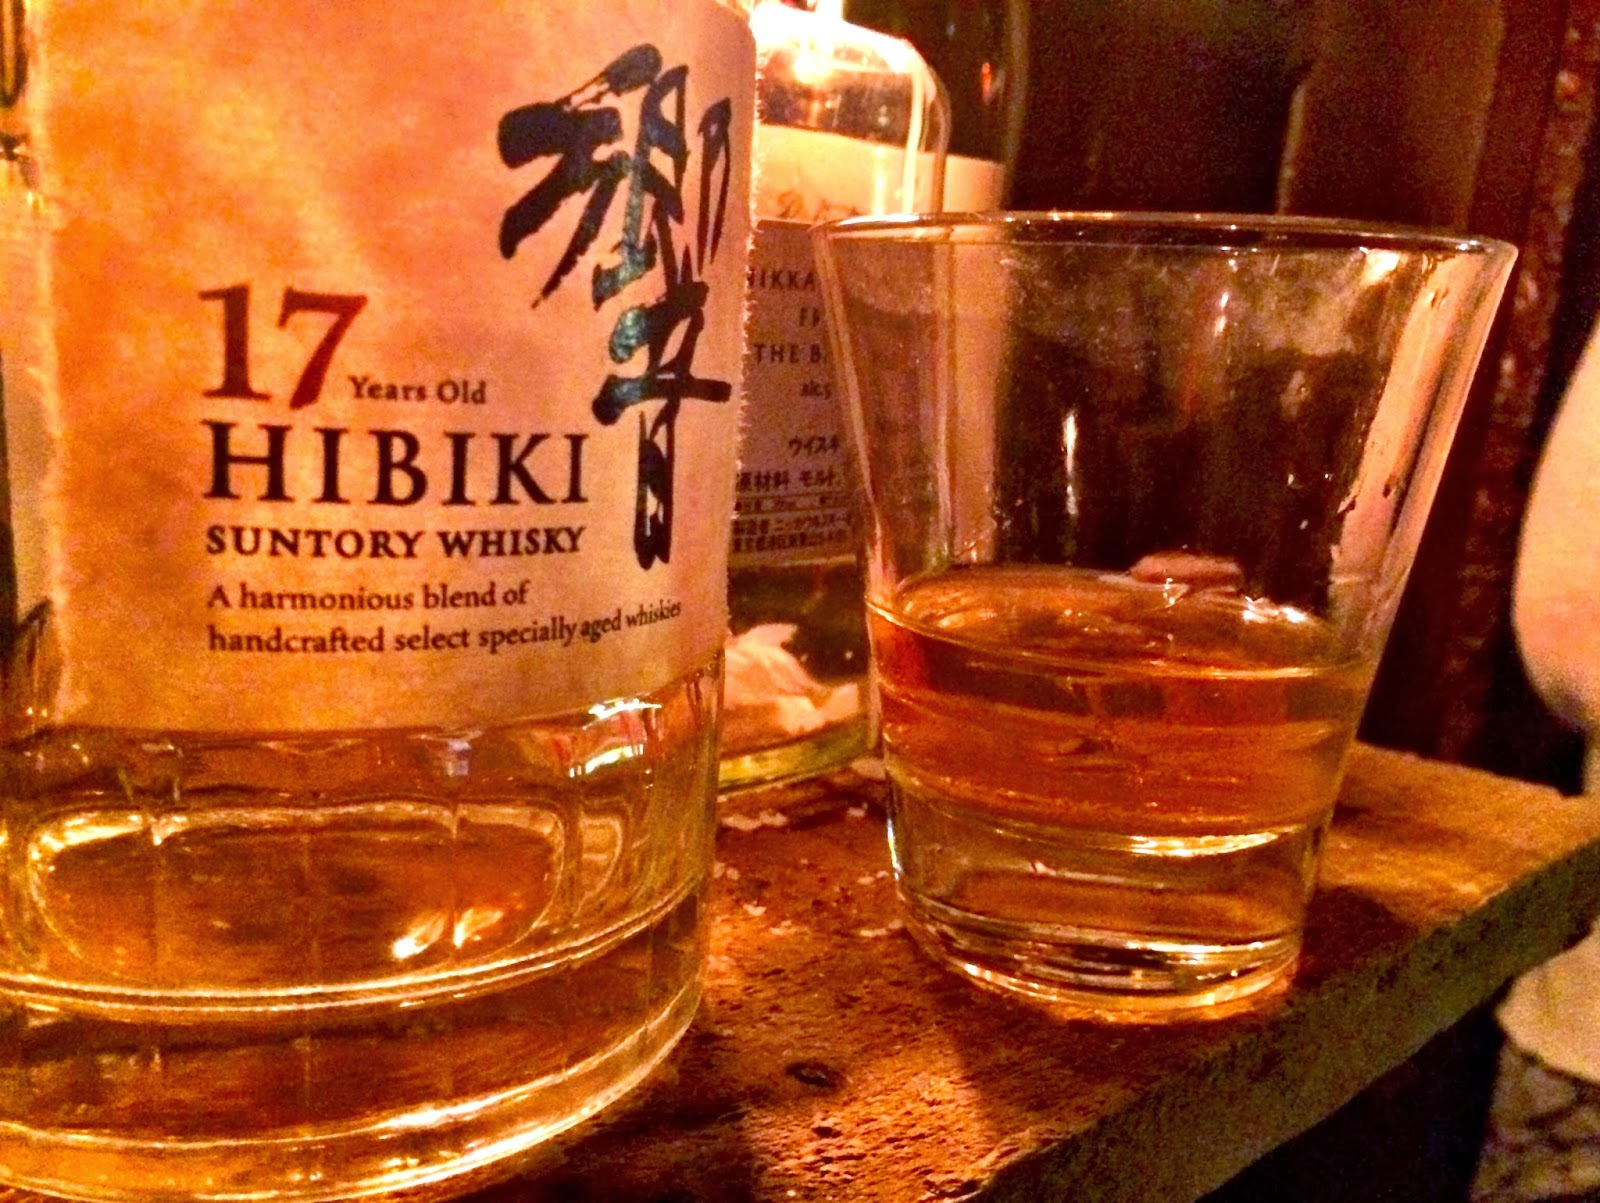 A large Hibiki 17 whisky - Hawker House